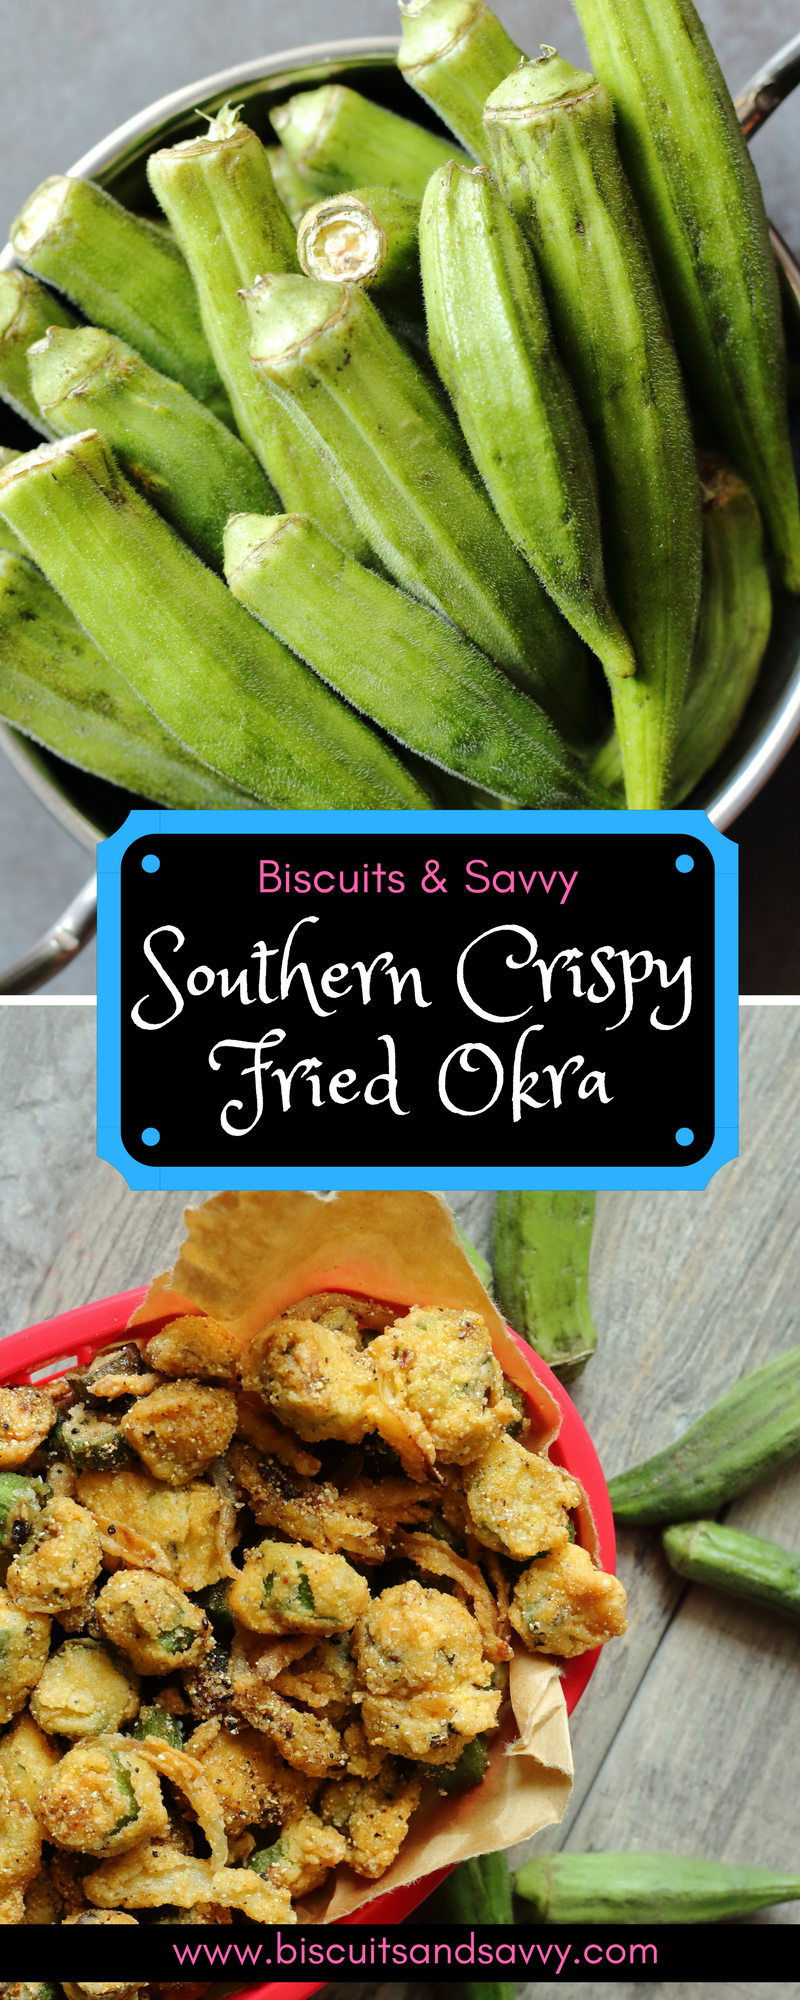 Southern Crispy Fried Okra is a quick, simple way to start your summer off right. A blend of corn meal and flour seasoned to perfection, coupled with egg, creates a batter for okra that makes a crunch you will not forget. #summersouthernfood